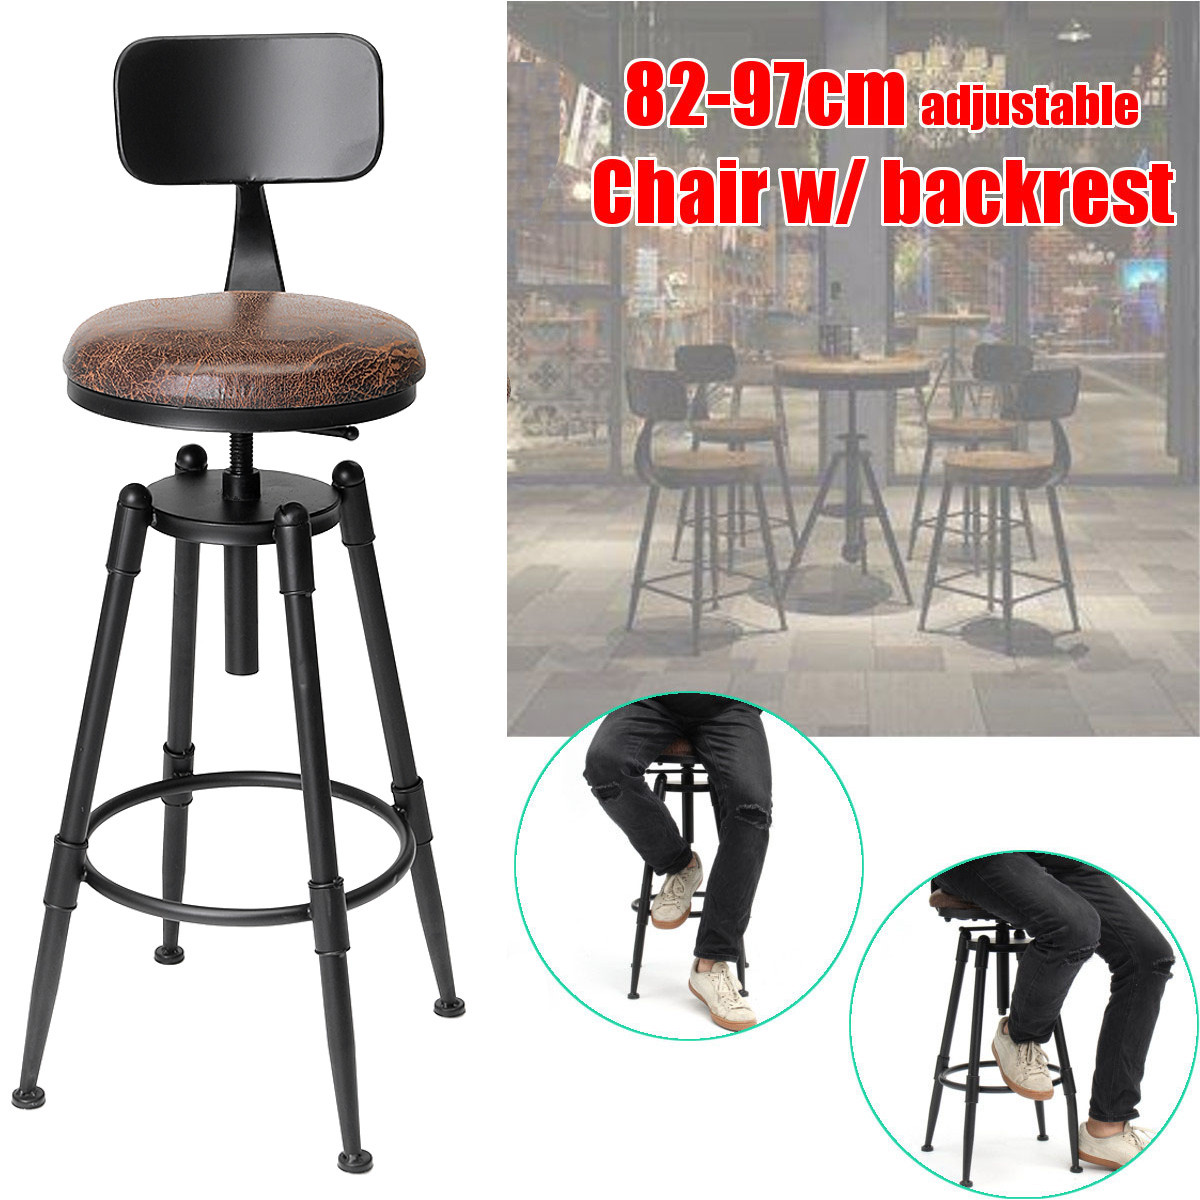 Adjustable Industrial Dining Chairs High Chair Bar Chair Retro Iron Leather Anti-slip Rotate Ergonomic Backrest Home Furniture